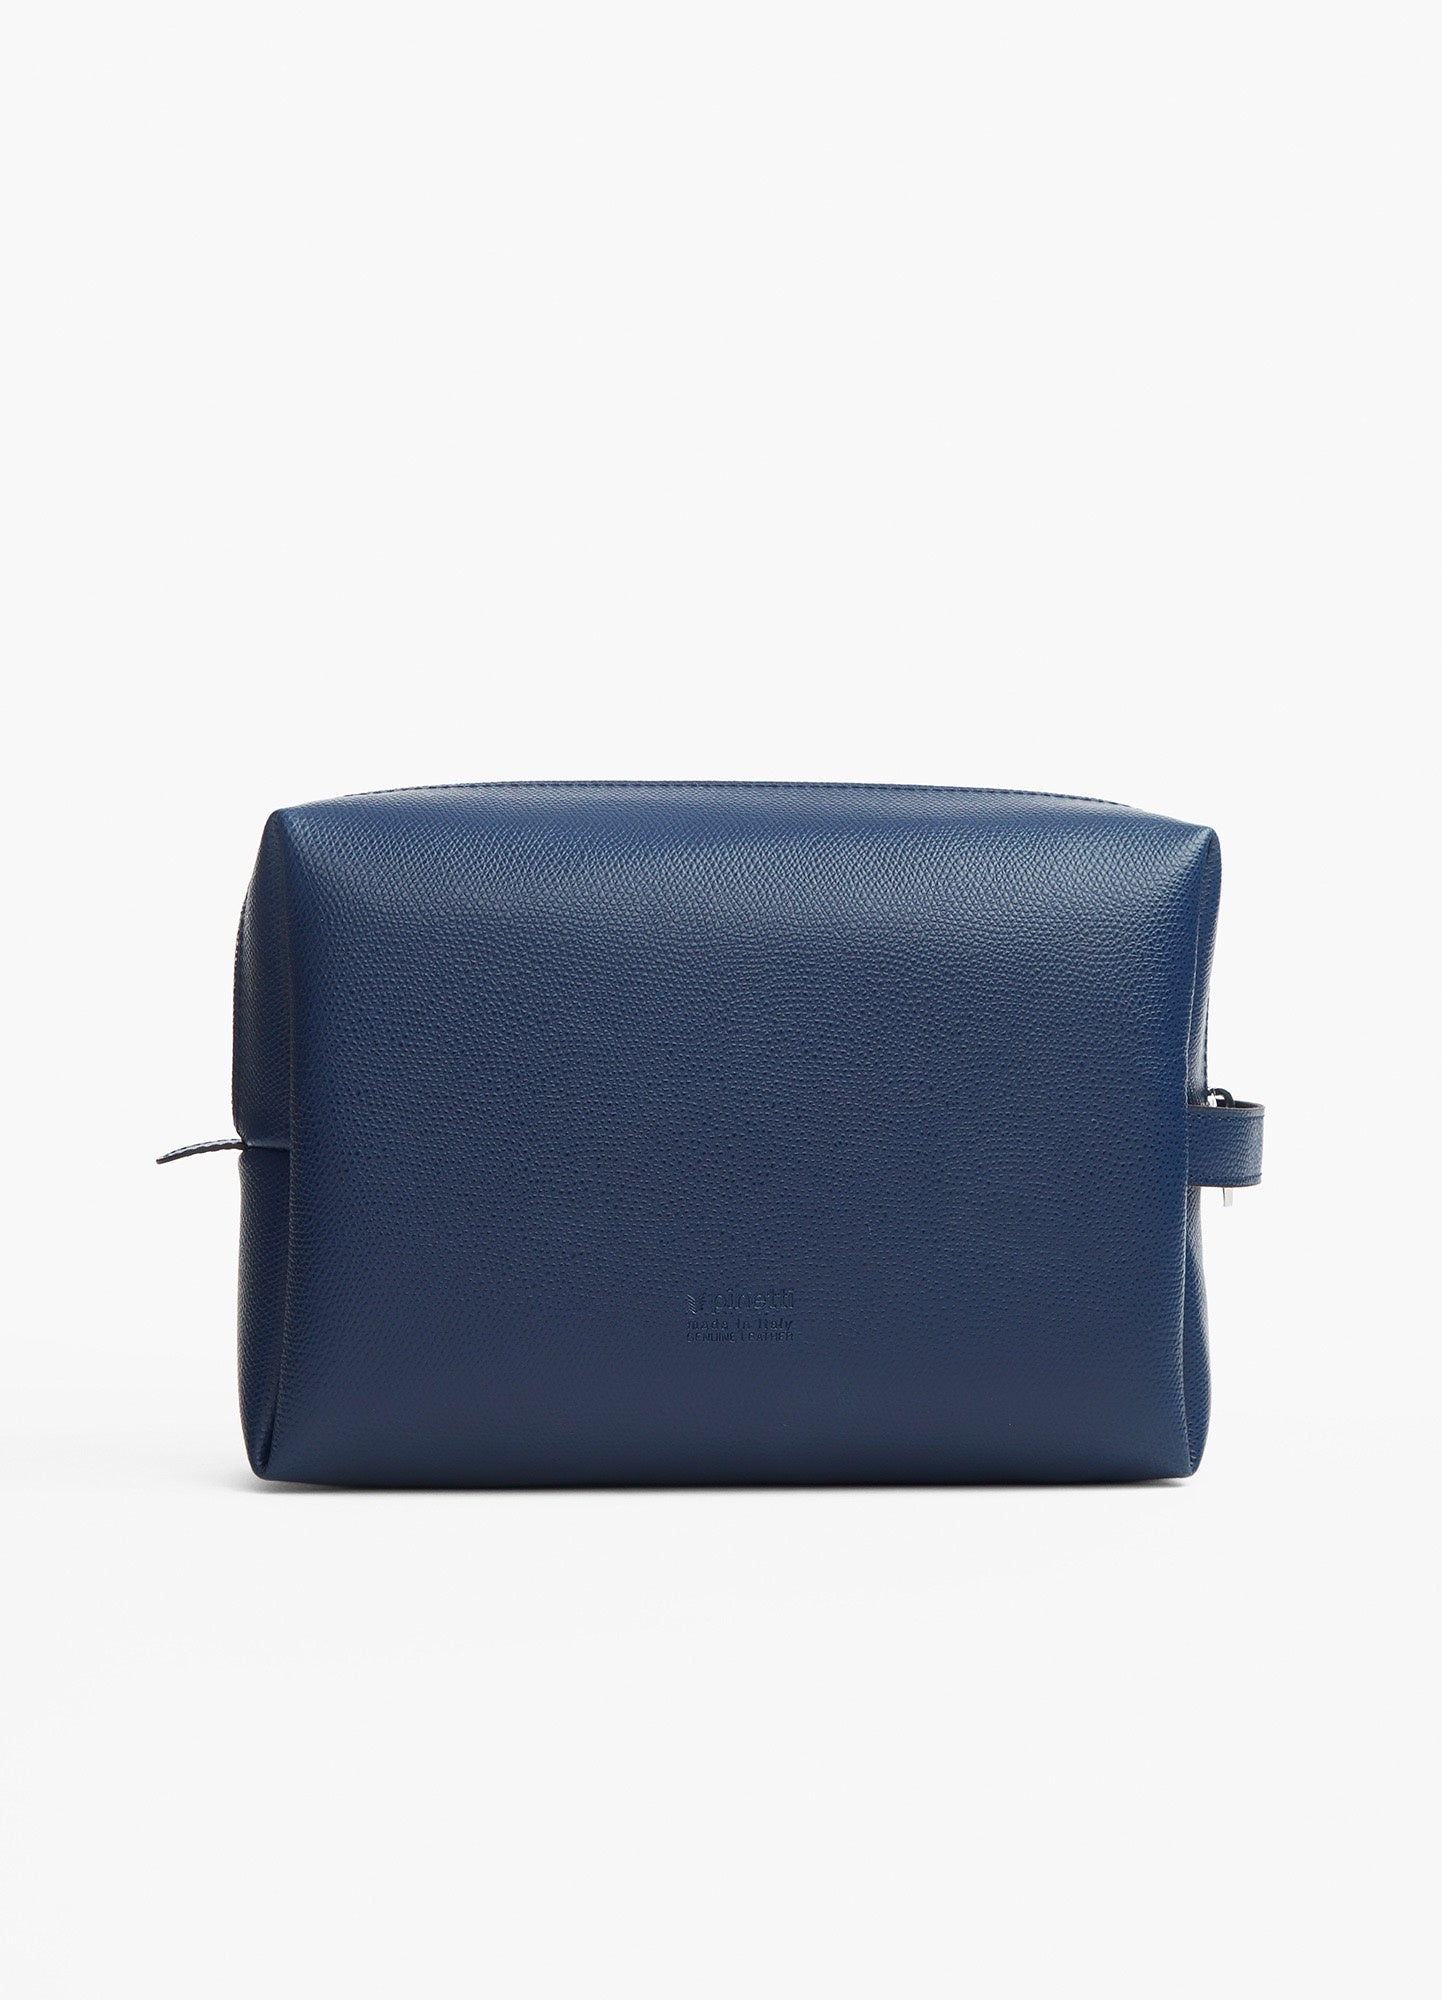 Large Travel Case Navy